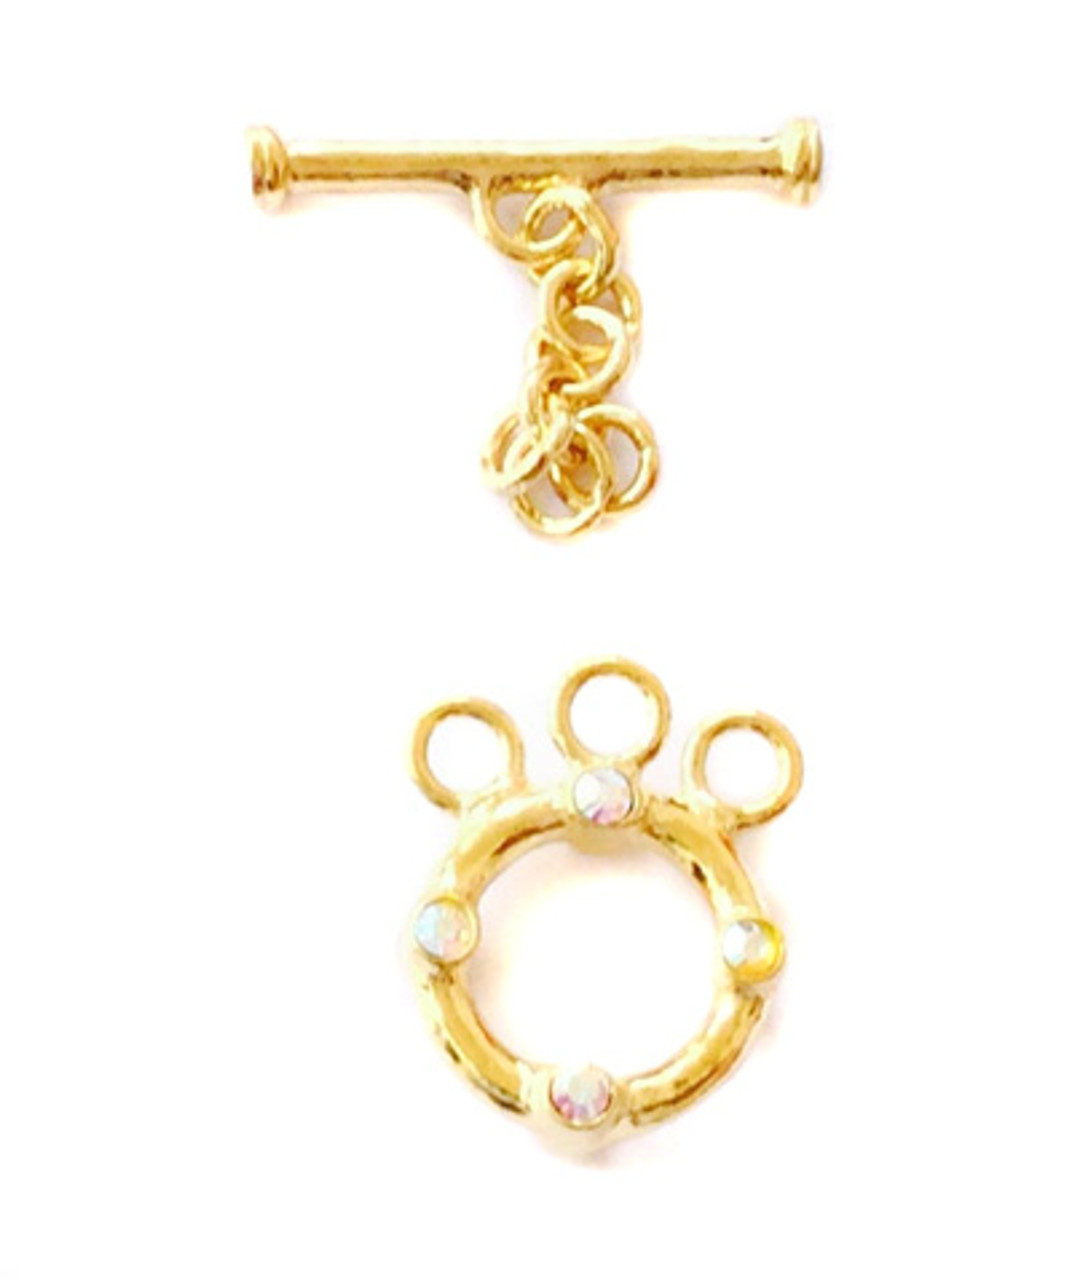 3 Strand Gold Vermeil Toggles-Bar with faceted crystal AB